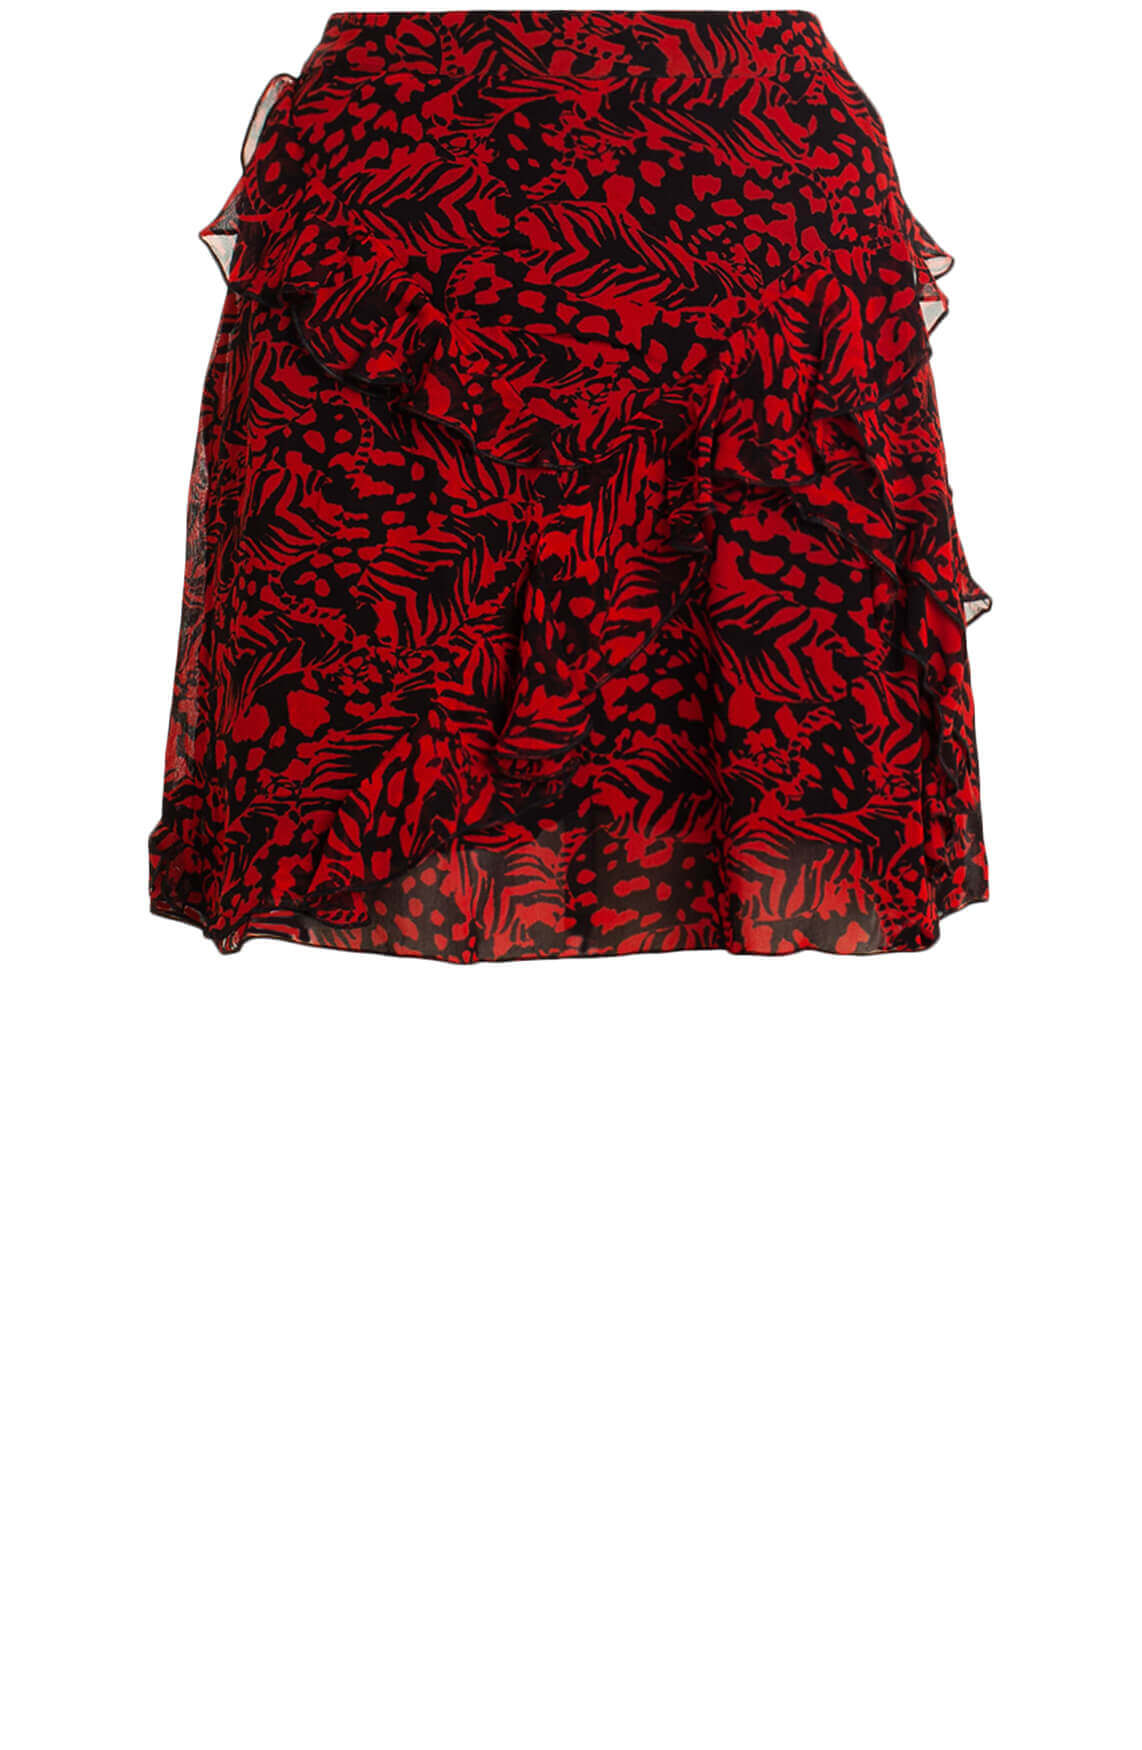 Alix The Label Dames Animalprint rok met ruffles Rood